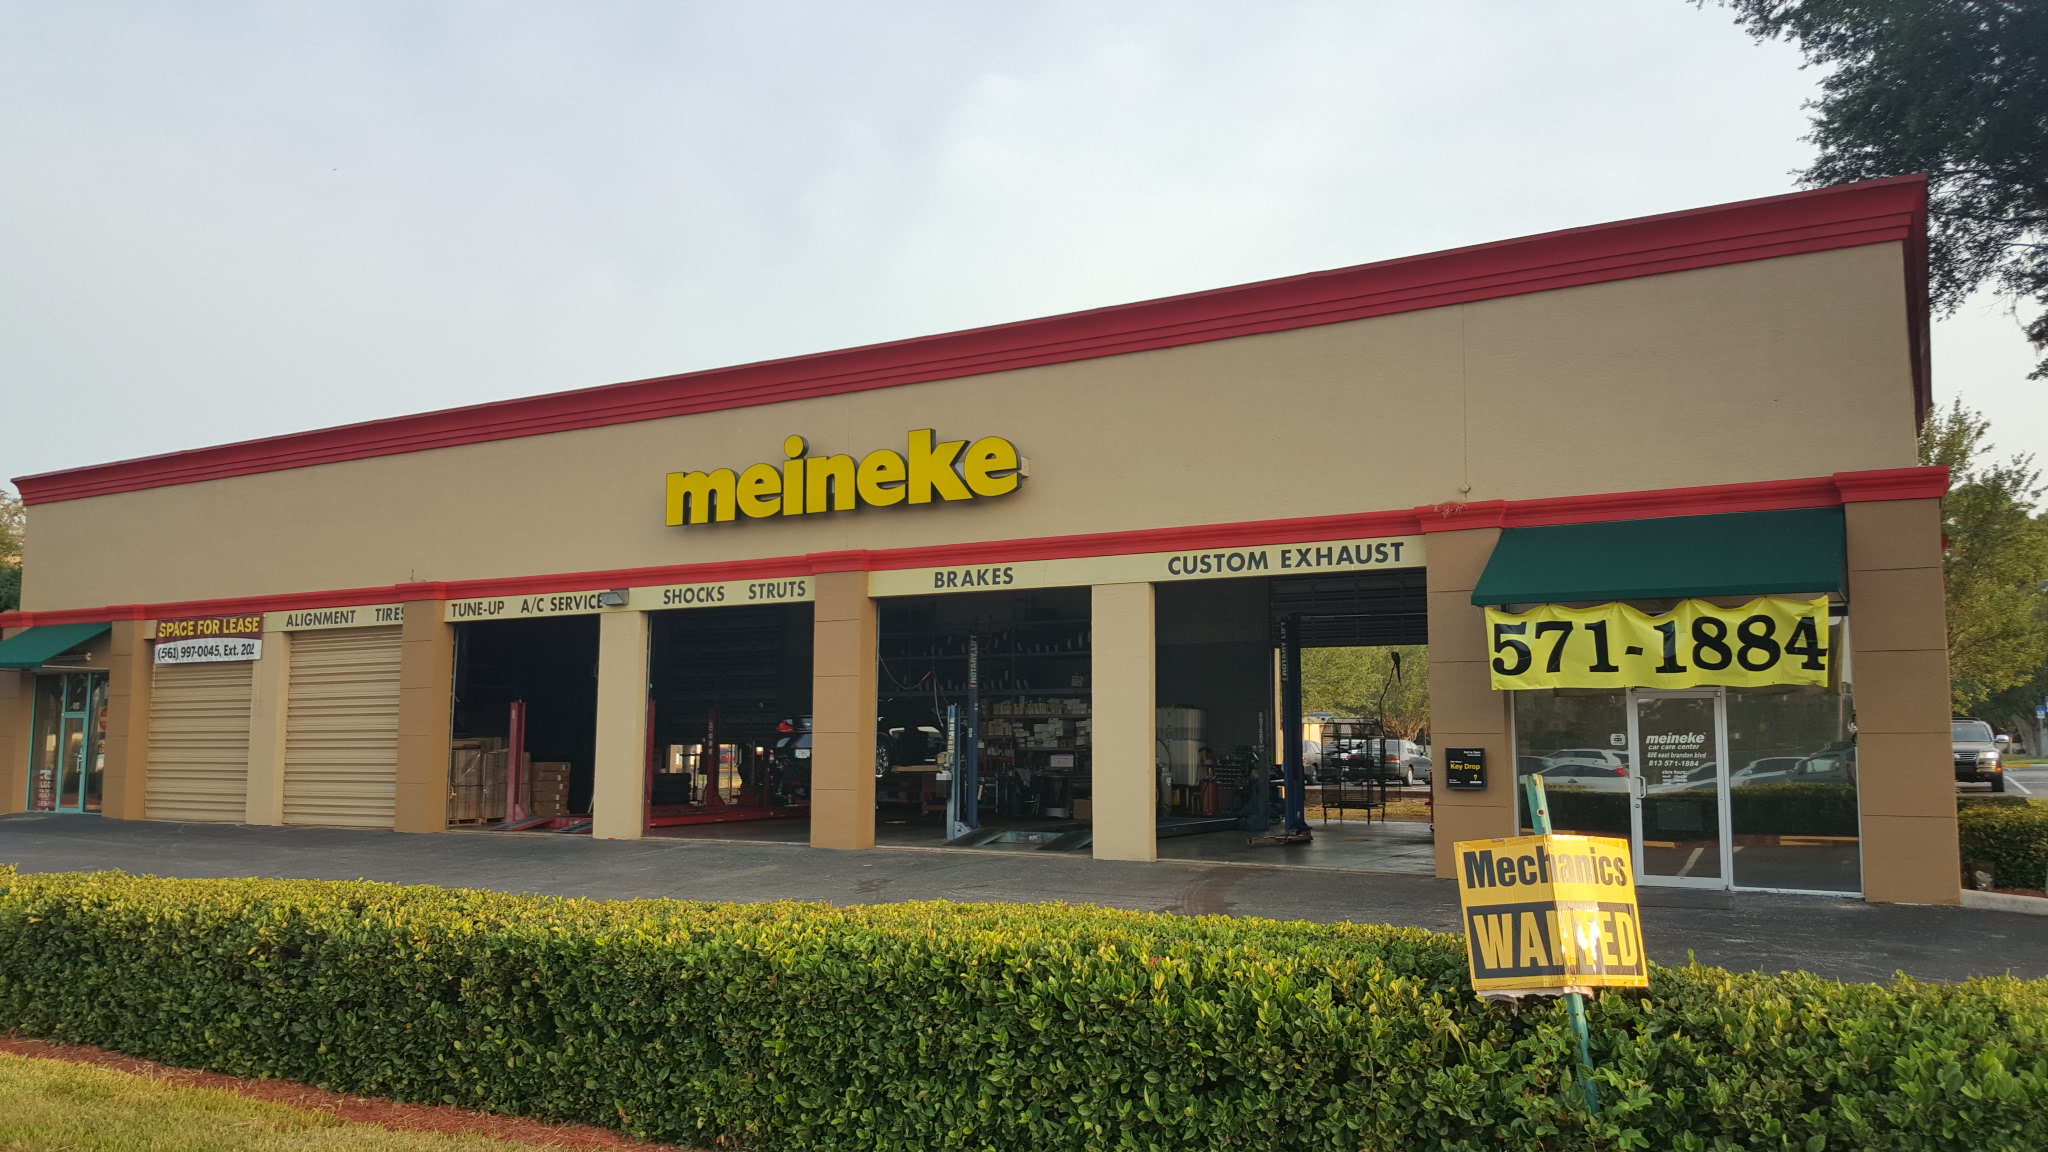 Visit Meineke Car Care for brake repair, tire rotations, oil changes and more!